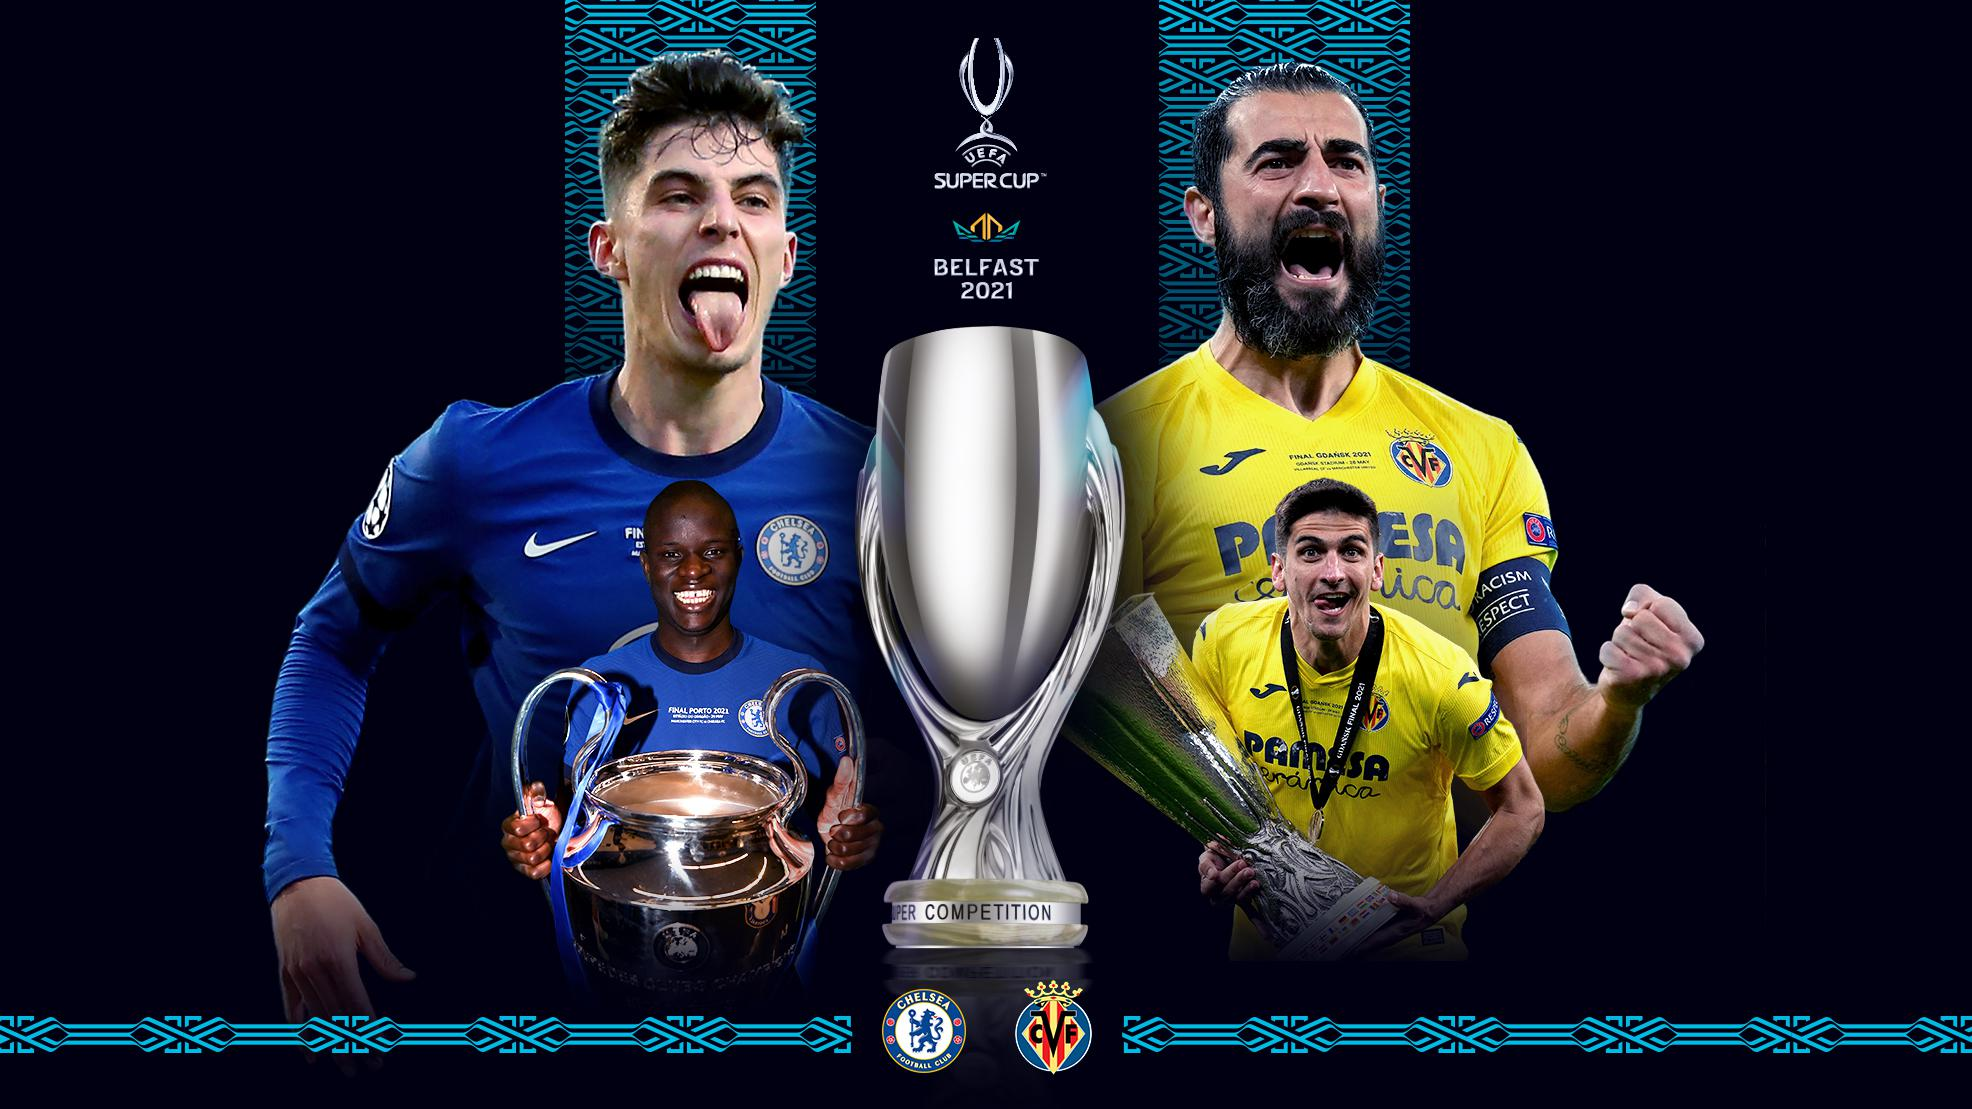 Chelsea vs Villarreal 2021 UEFA Super Cup preview: where to watch, TV channels and live streams, team news, form guide